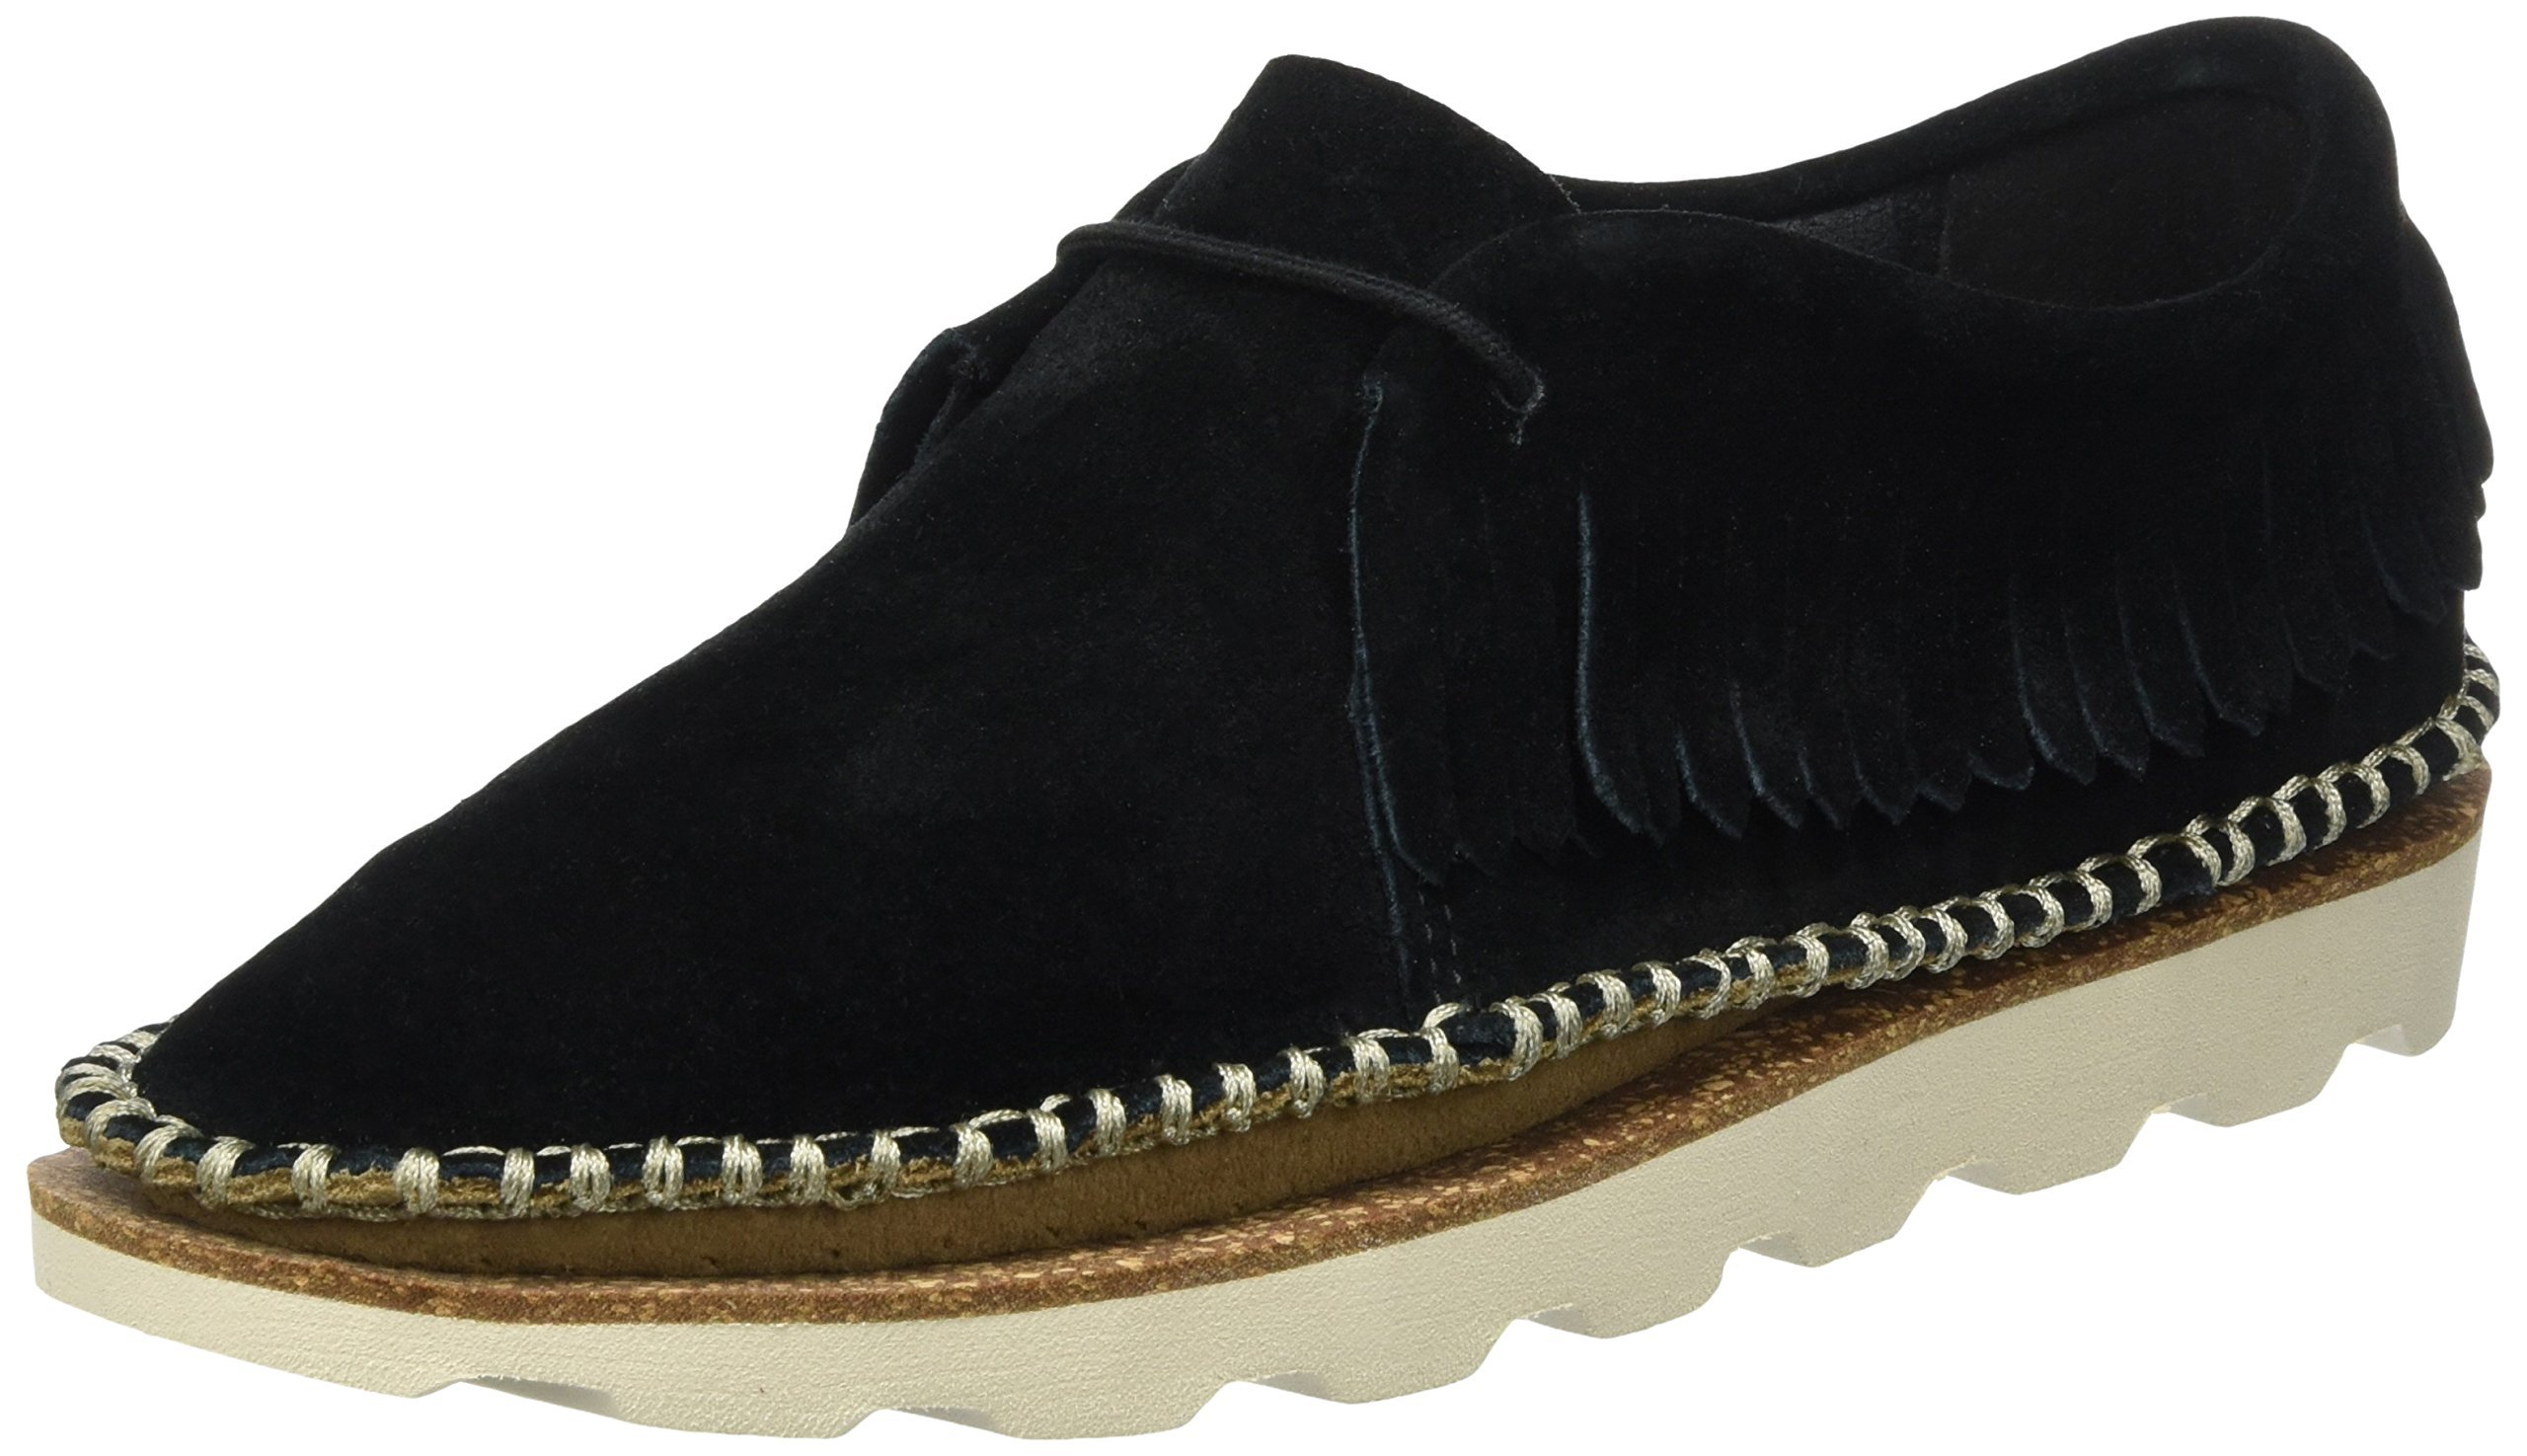 Clarks Women's Damara Thrill Leather Loafers and Moccasins